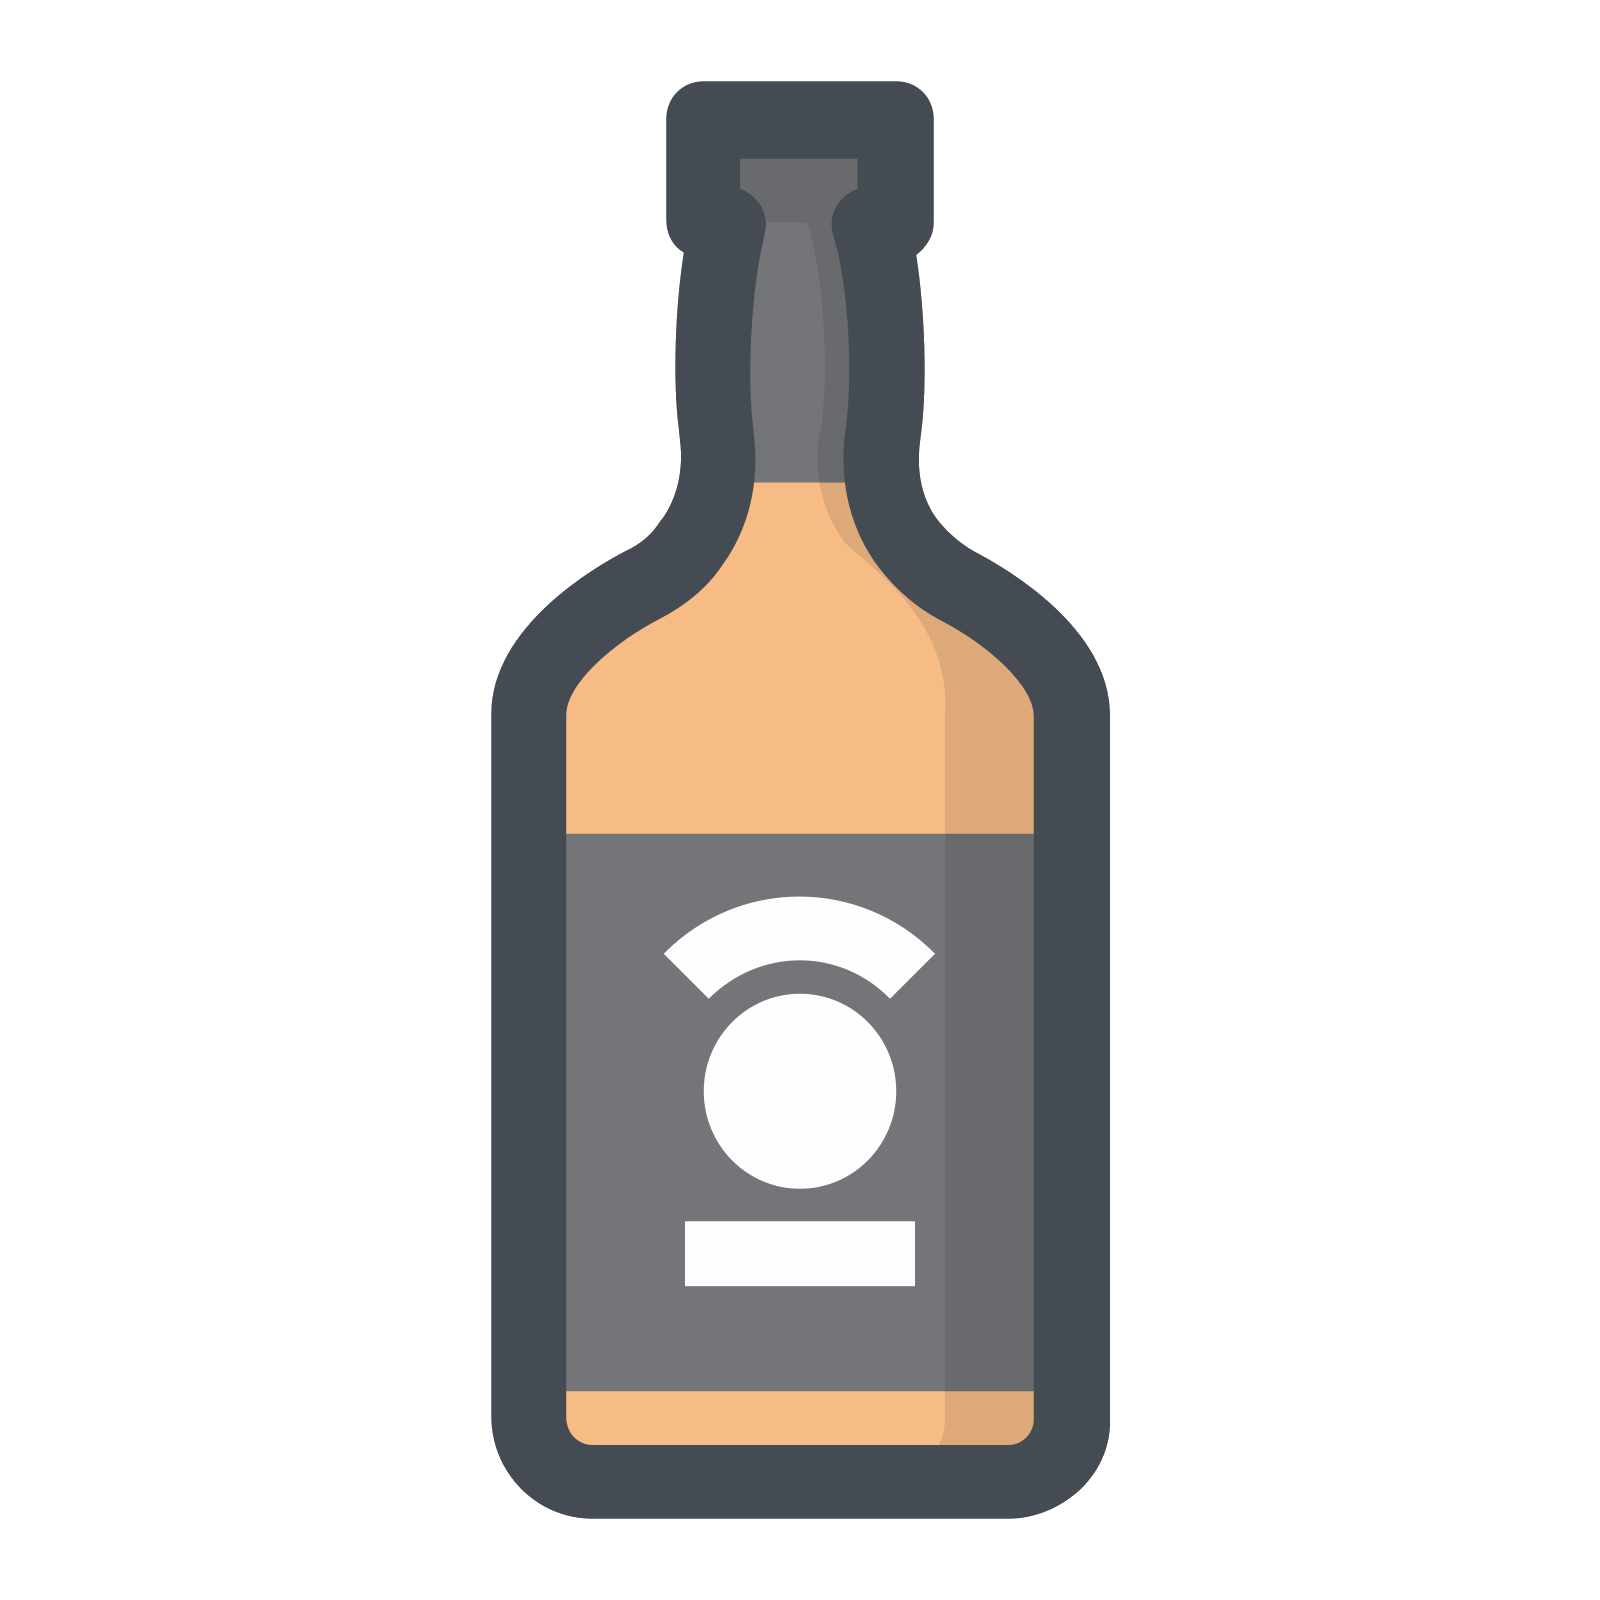 Whiskey vector. Icon free download png